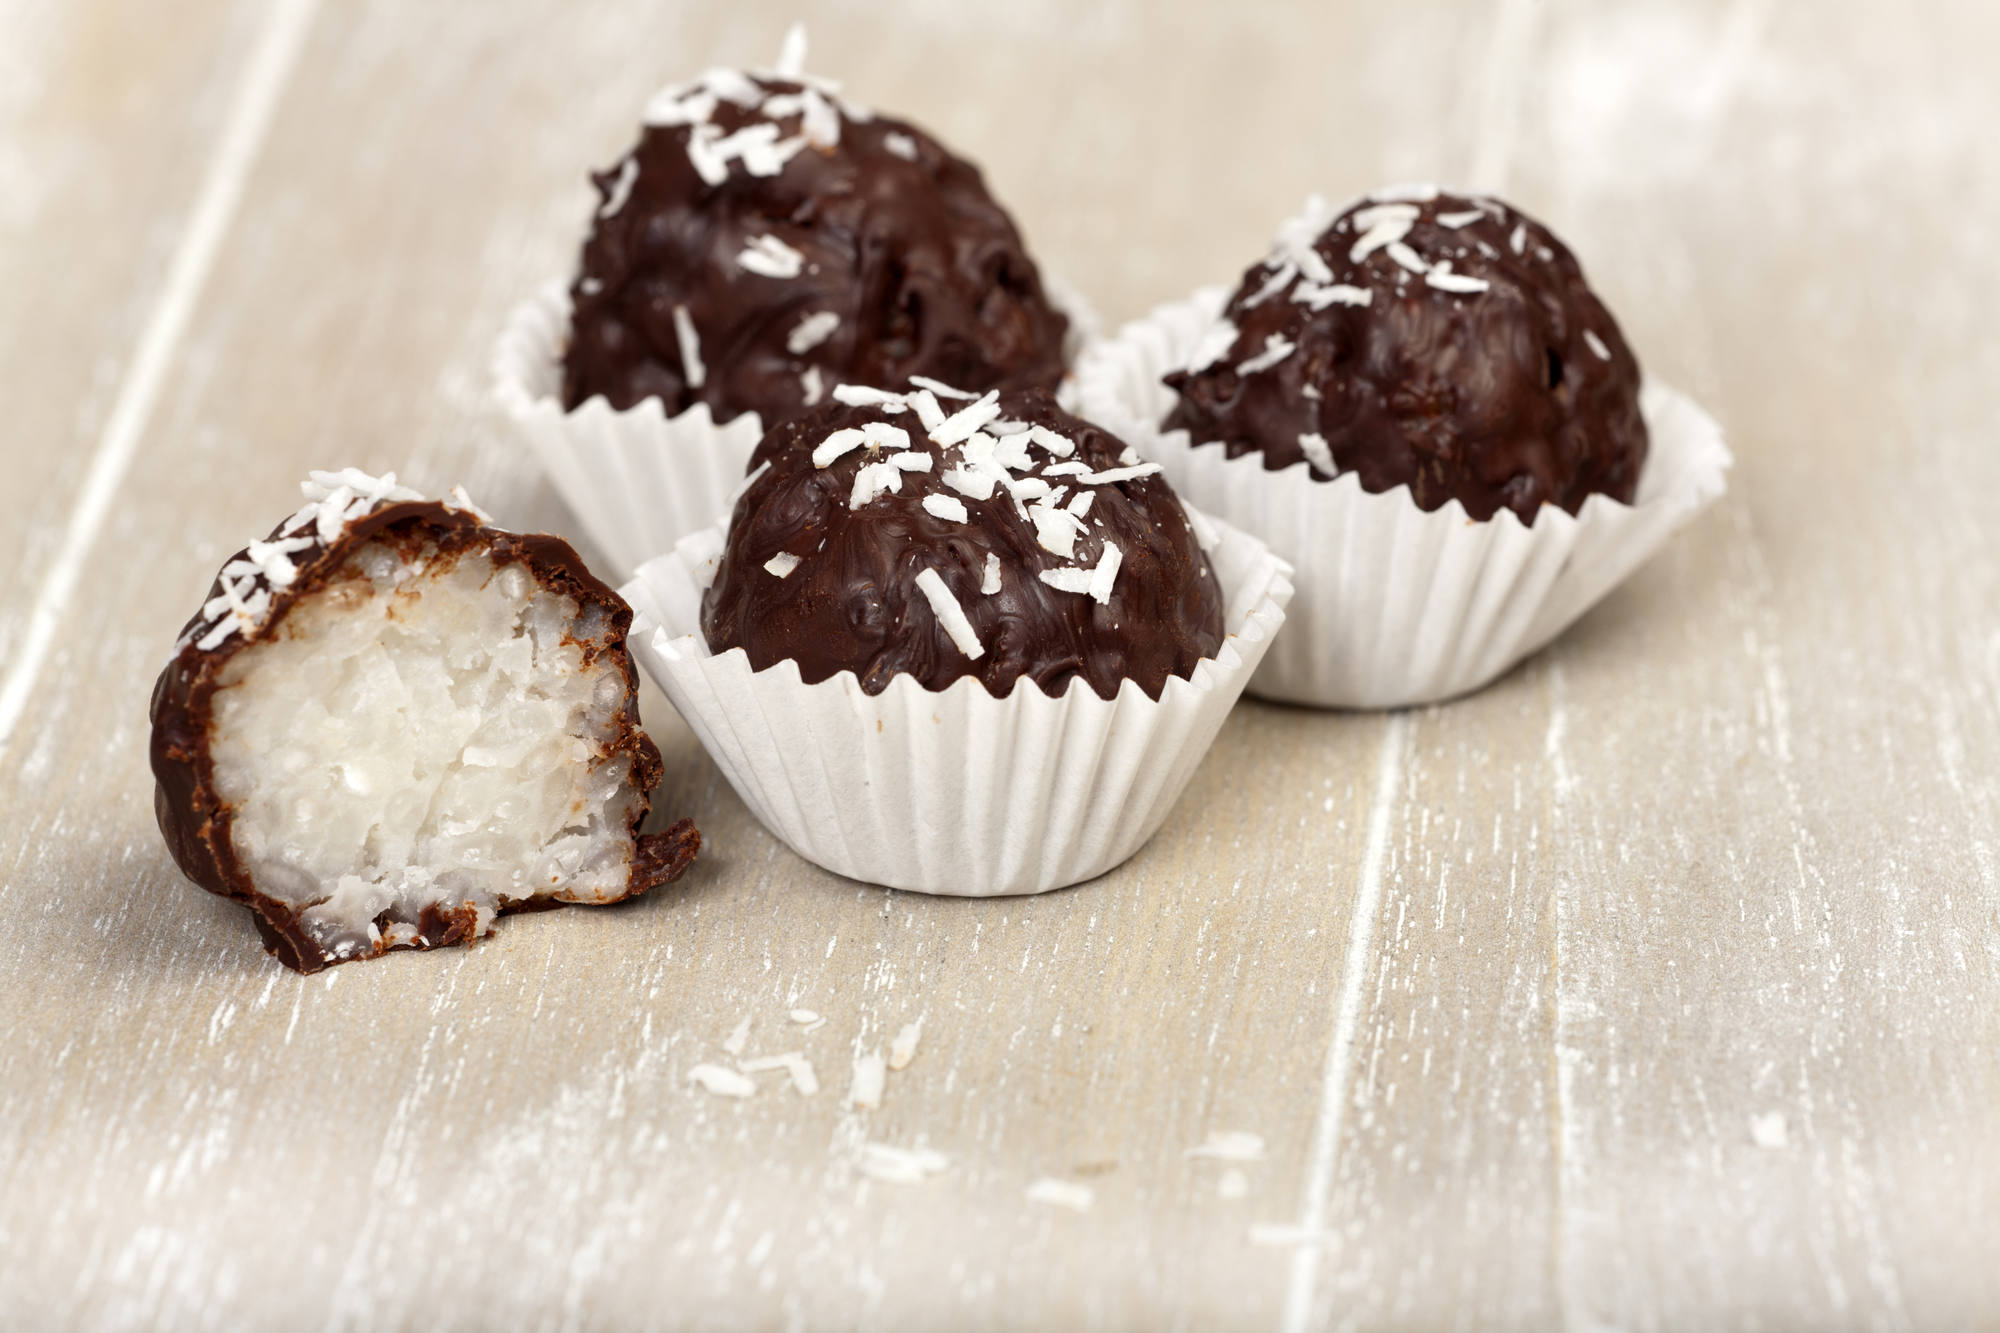 Chocolate covered coconut cany